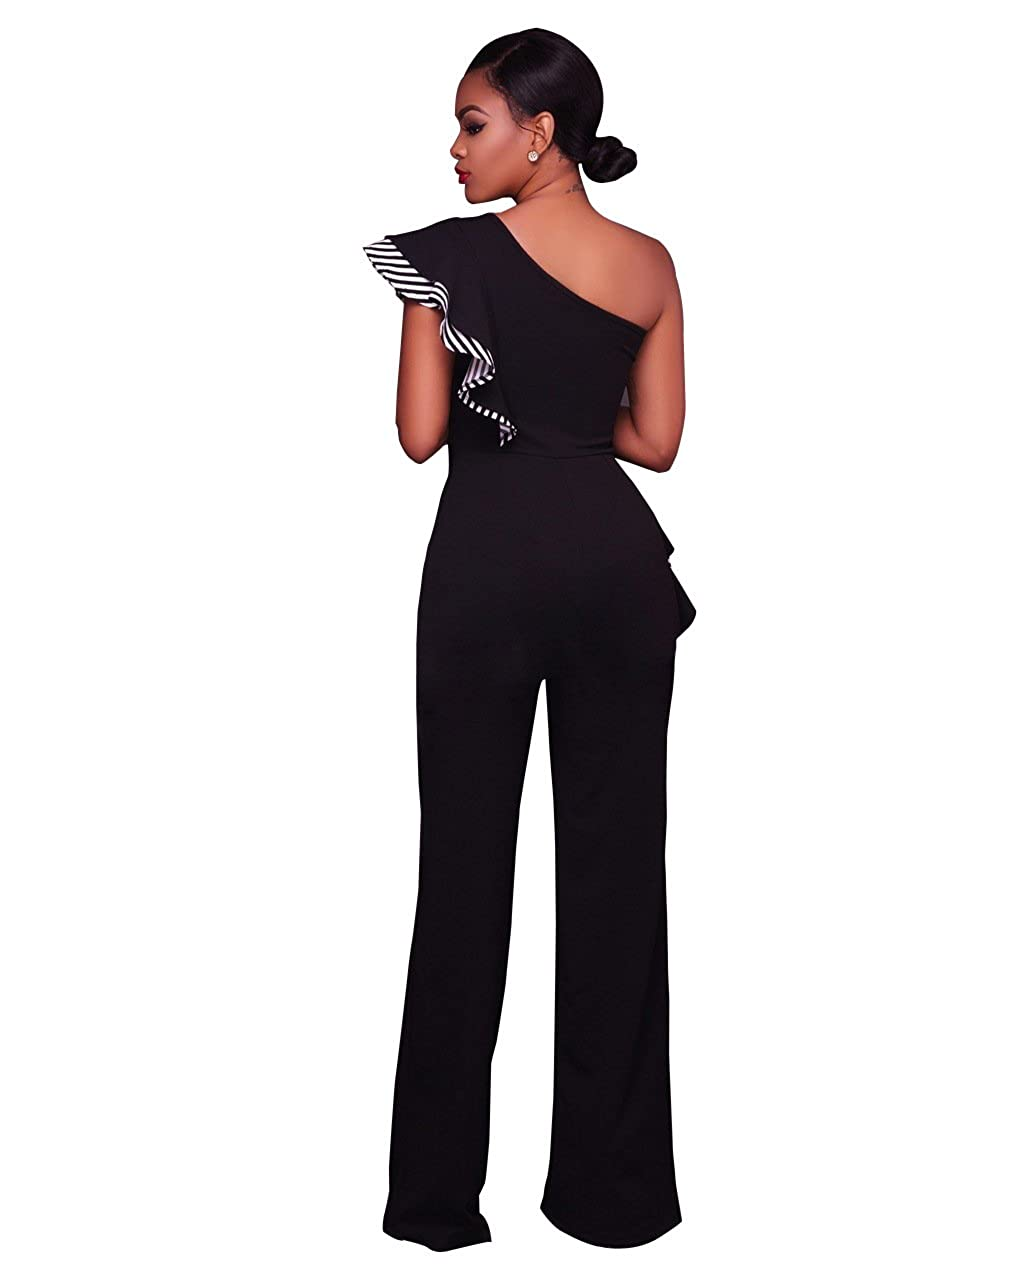 799d40dbfc Amazon.com  VERTTEE Women s Sexy One Shoulder Ruffle Asymmetric Falbala  High Waist Wide Leg Long Pants Jumpsuit Rompers Black S  Clothing